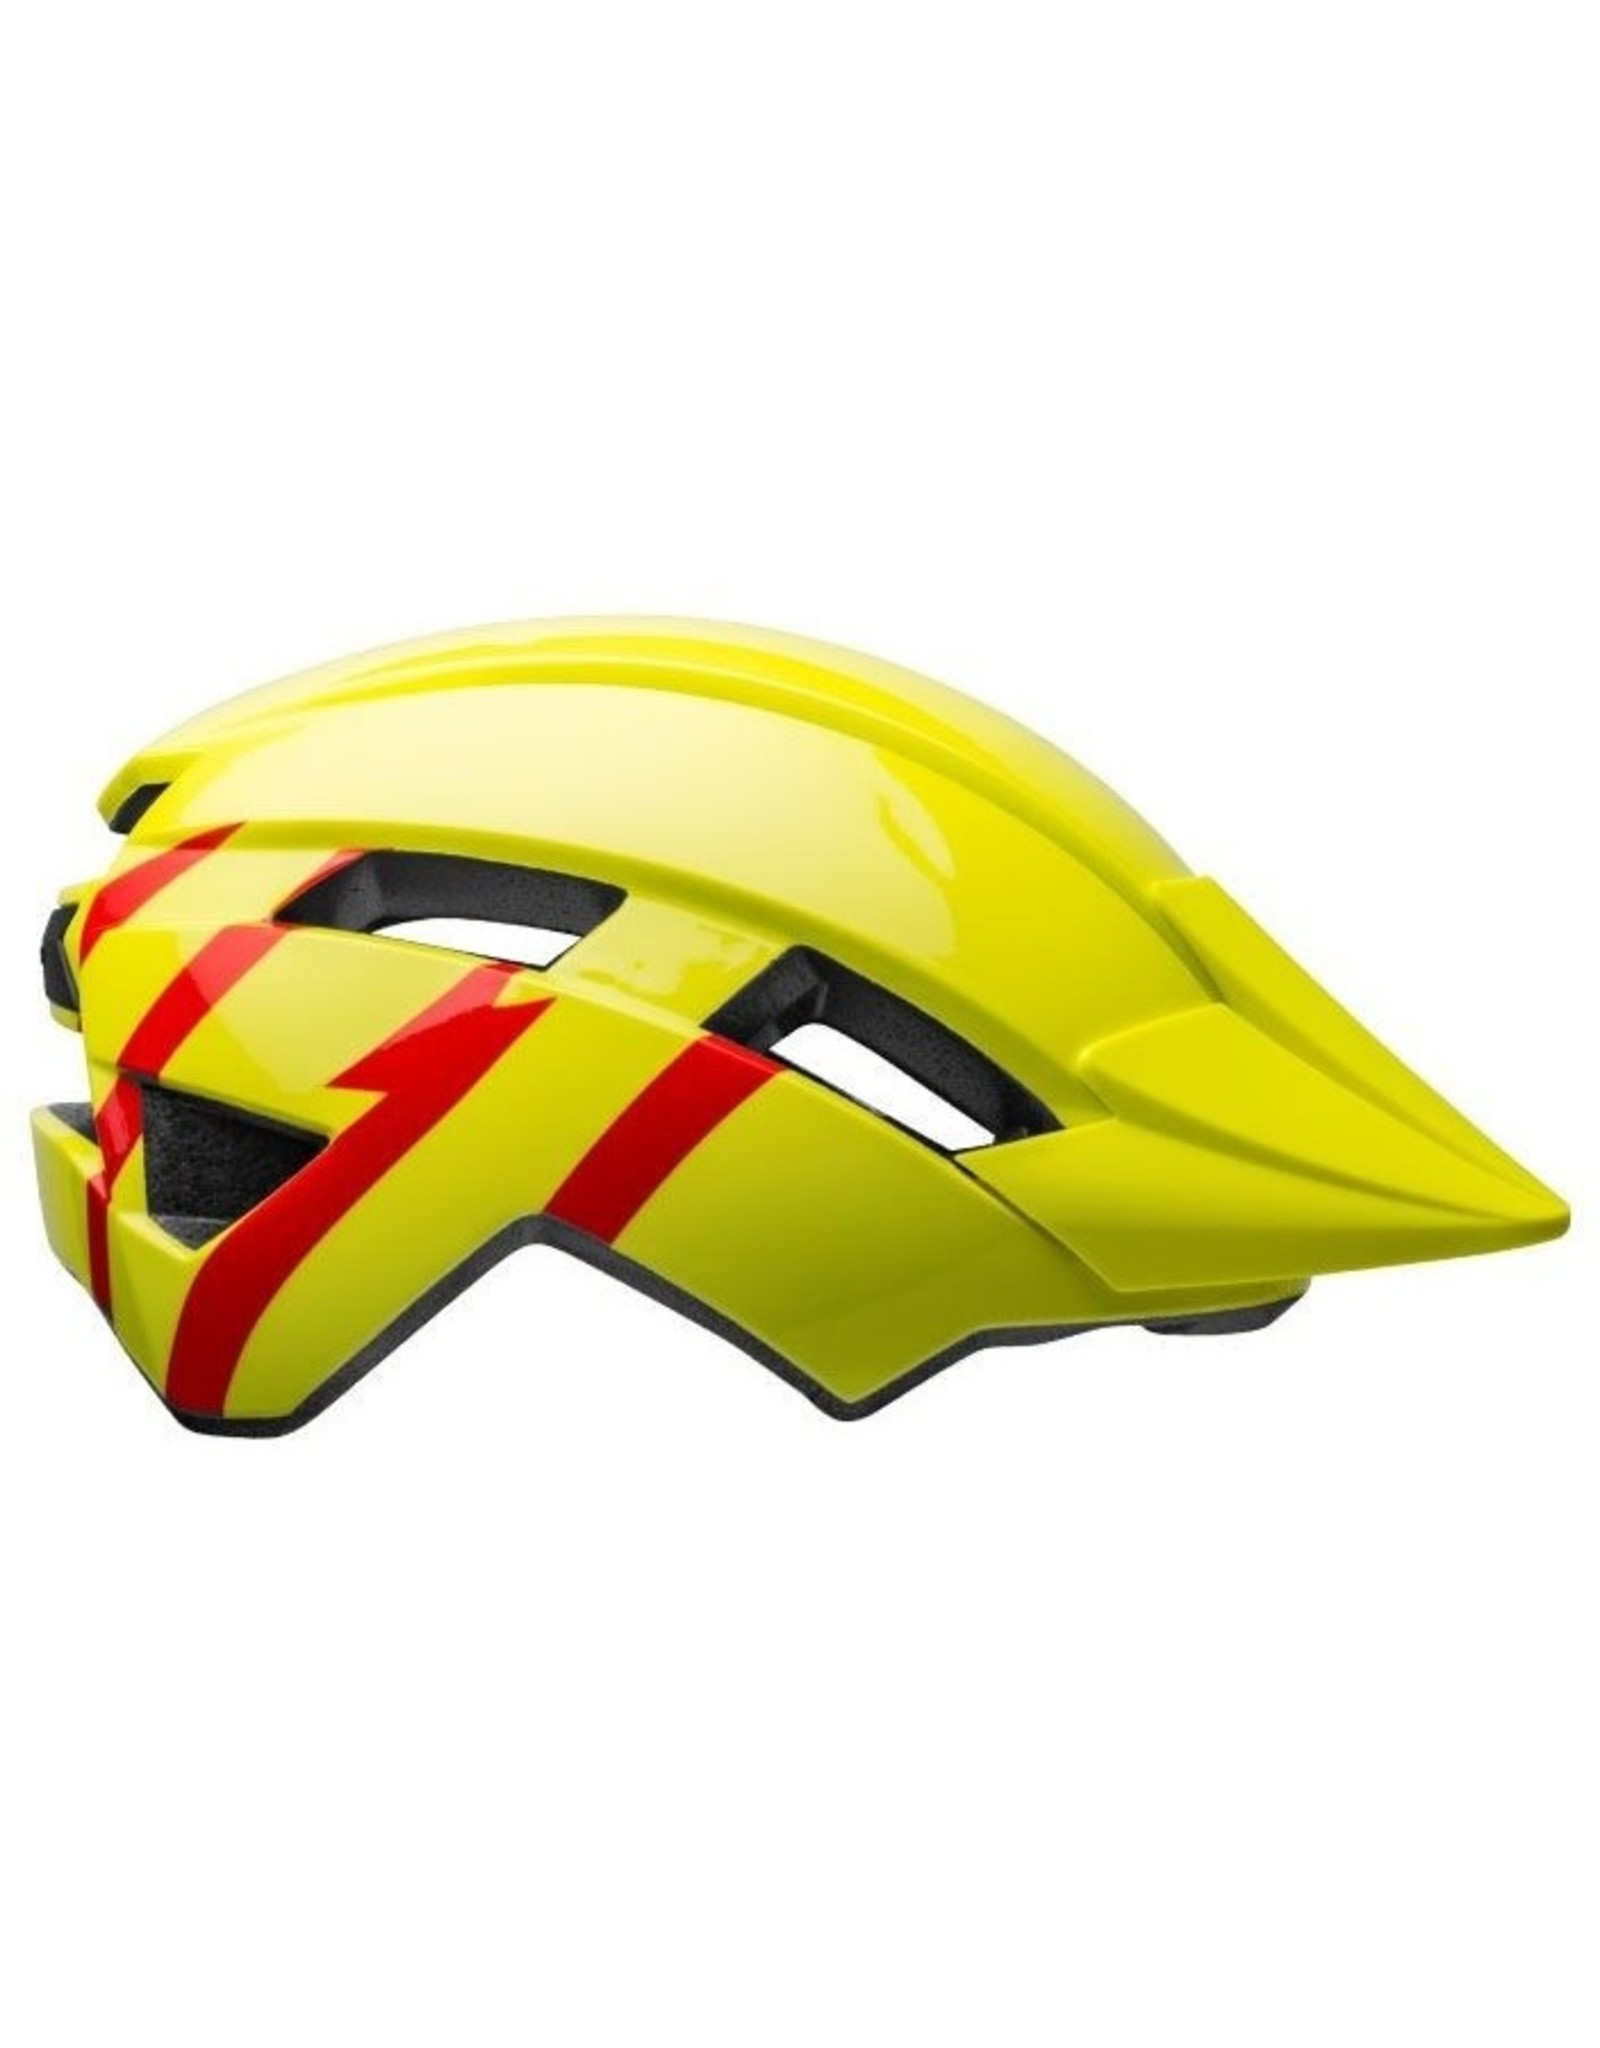 BELL SIDETRACK II HIVZ/RED-YELLOW UC CASQUE DE VÉLO